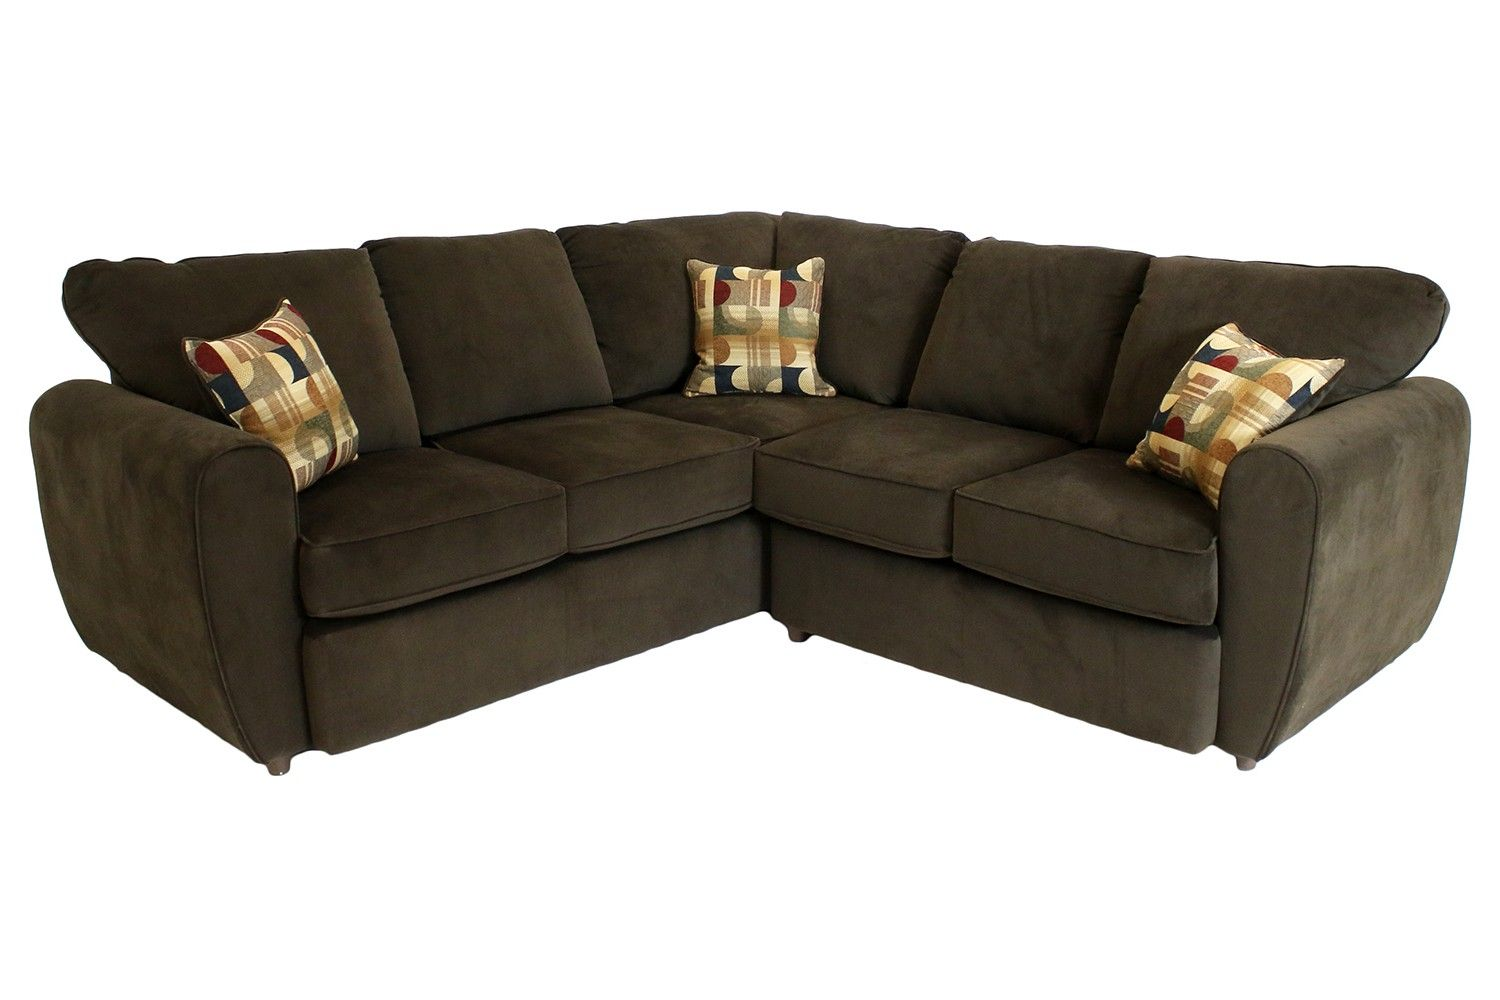 Mor Furniture for Less The Austin Cafe Reclining Living Room | Mor Furniture for Less | Sofas | Pinterest | Room and Living rooms  sc 1 st  Pinterest & Mor Furniture for Less: The Austin Cafe Reclining Living Room ... islam-shia.org